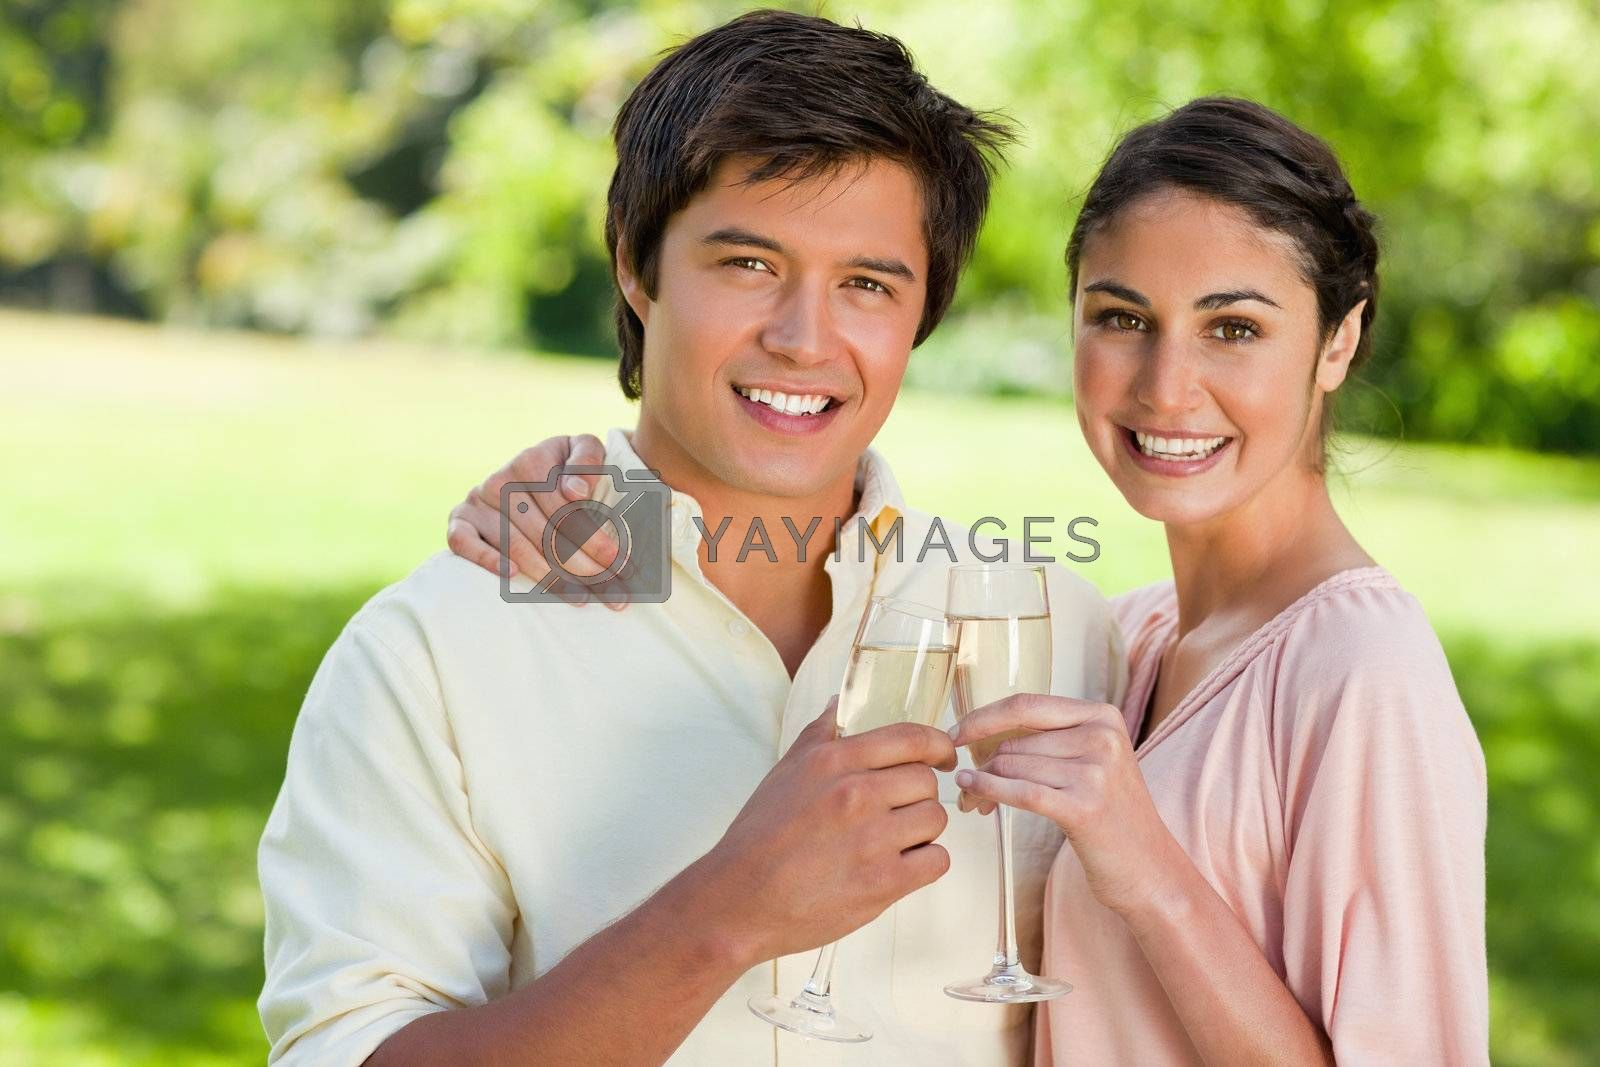 Man and a woman smiling while they touch glasses of champagne in celebration